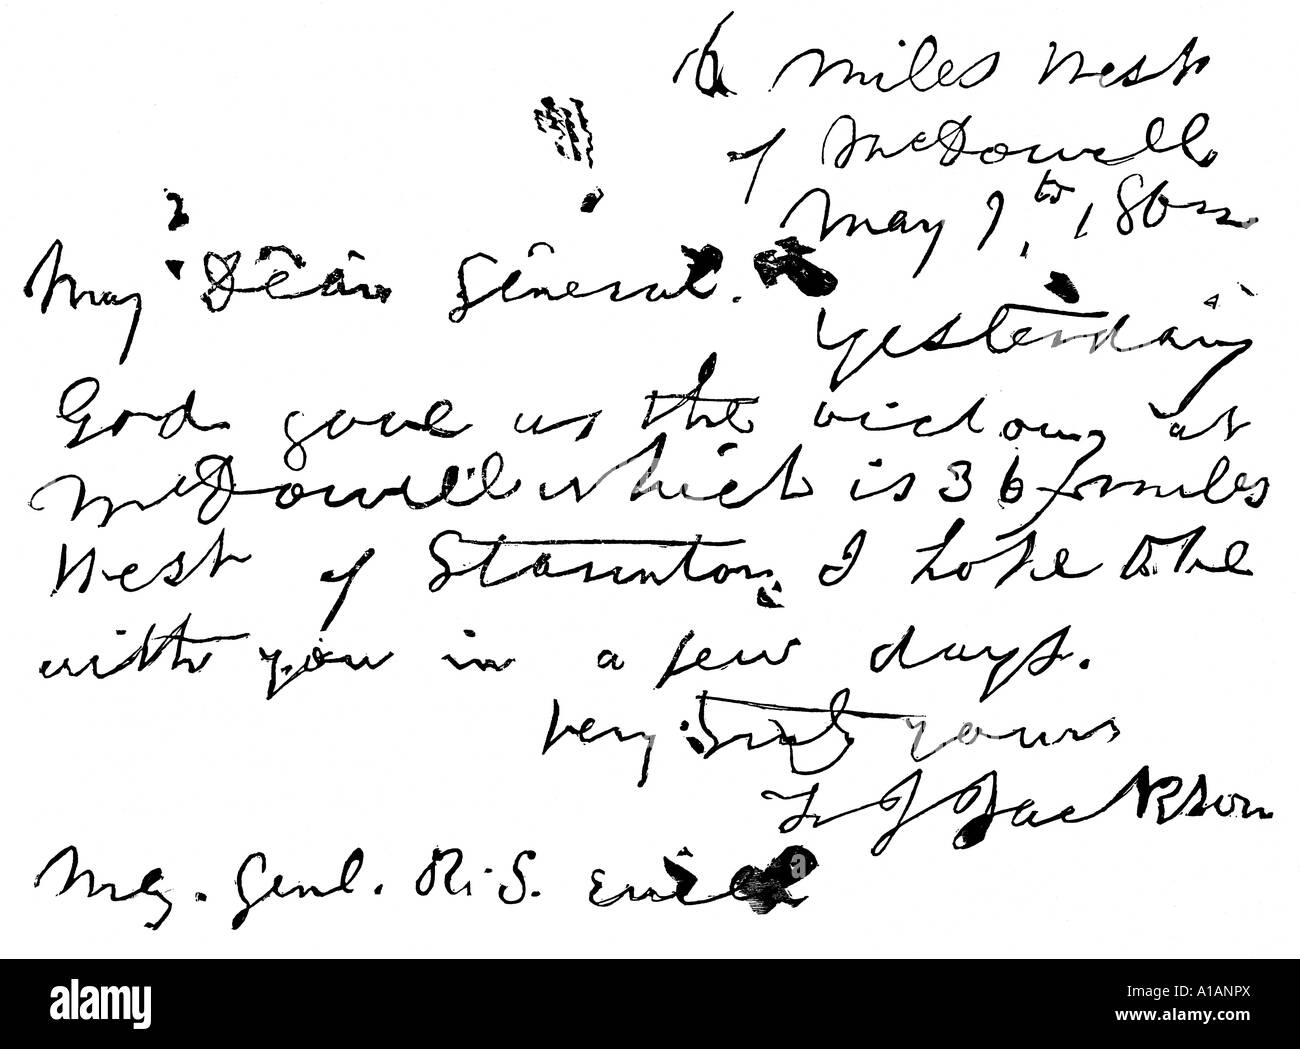 Letter of Stonewall Jackson to General ewell - Stock Image